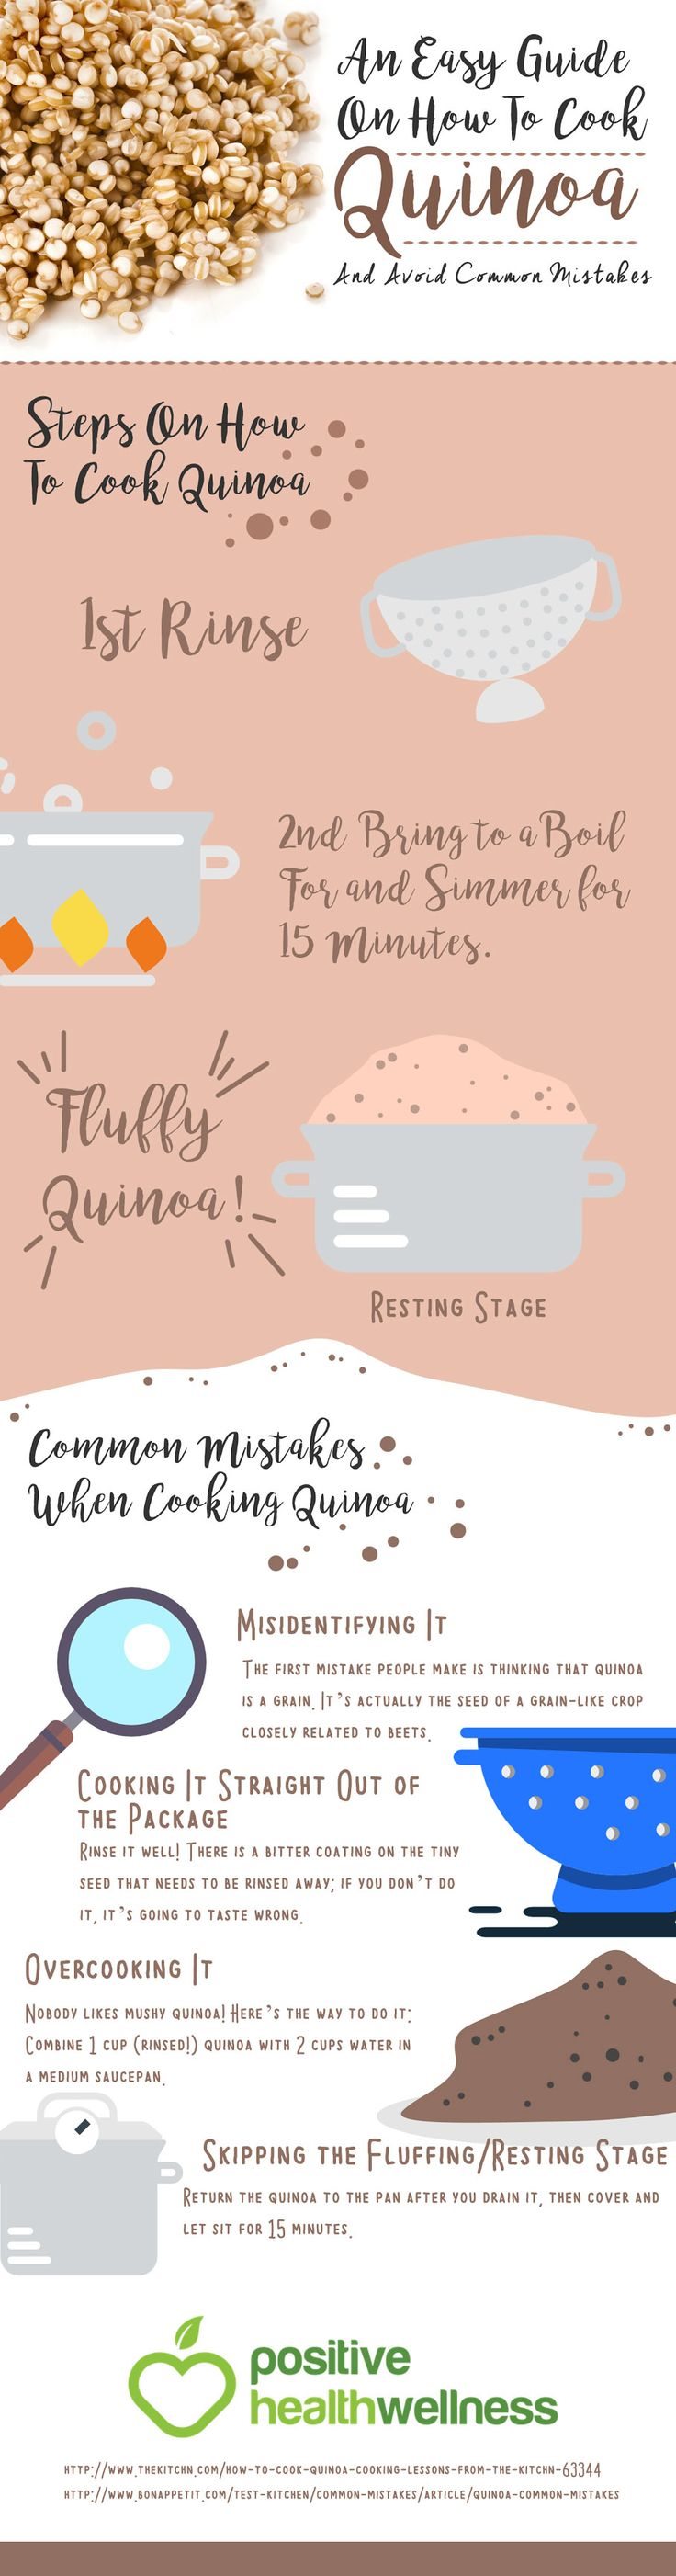 Nutritional value of quinoa per 100g (cooked): How many calories in quinoa – 120, How much protein in quinoa – 4.4g, How many carbs in quinoa – 21g